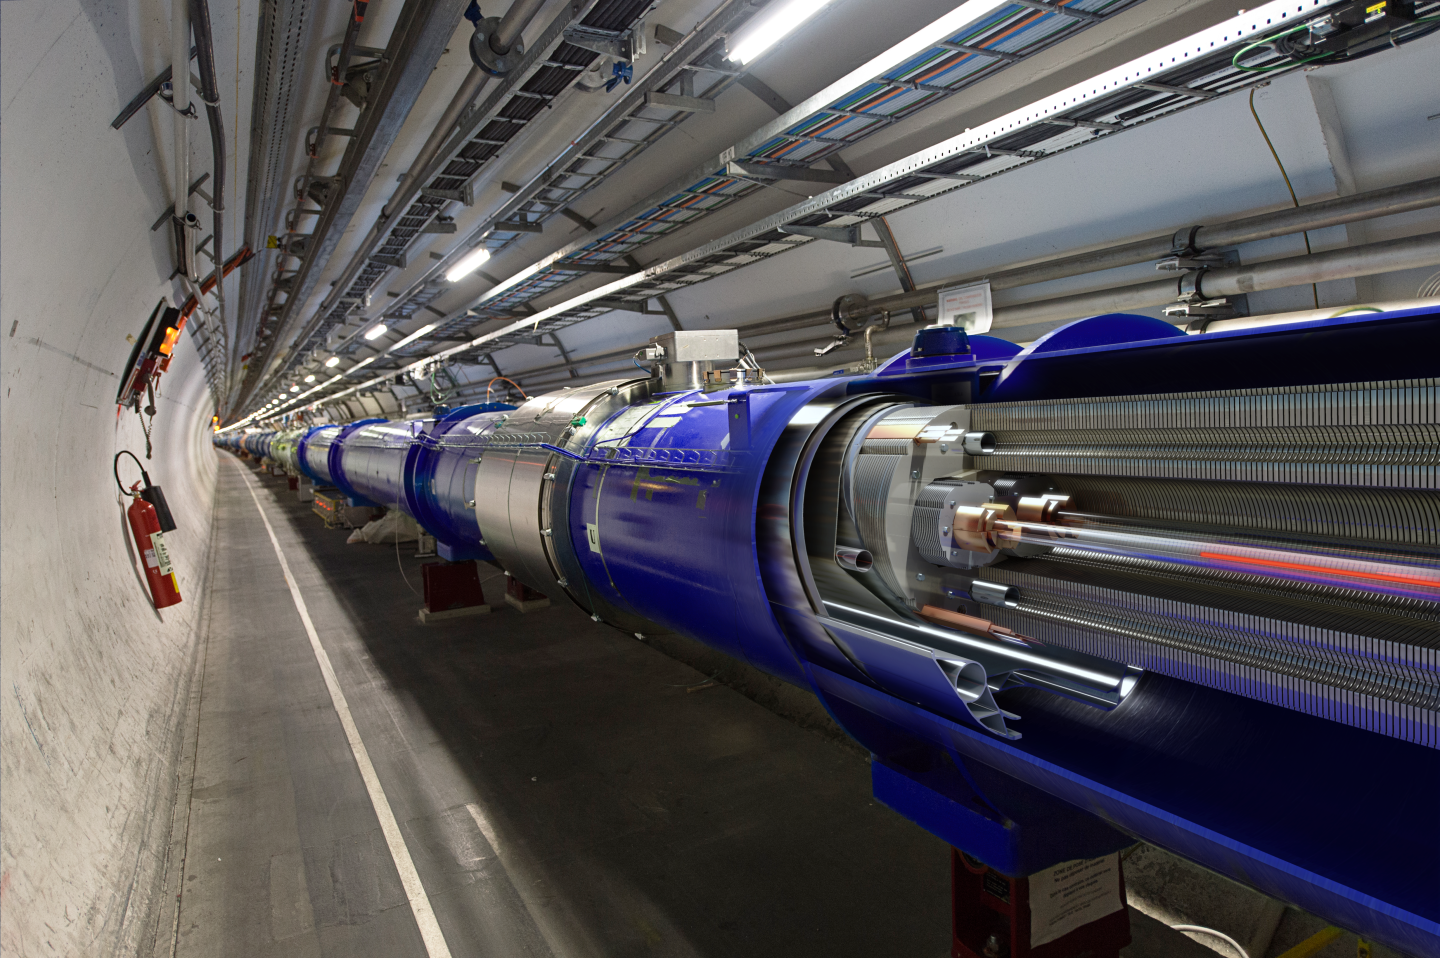 The search Supersymmetry is still going on at CERN. Photo: D. Dominguez/CERN